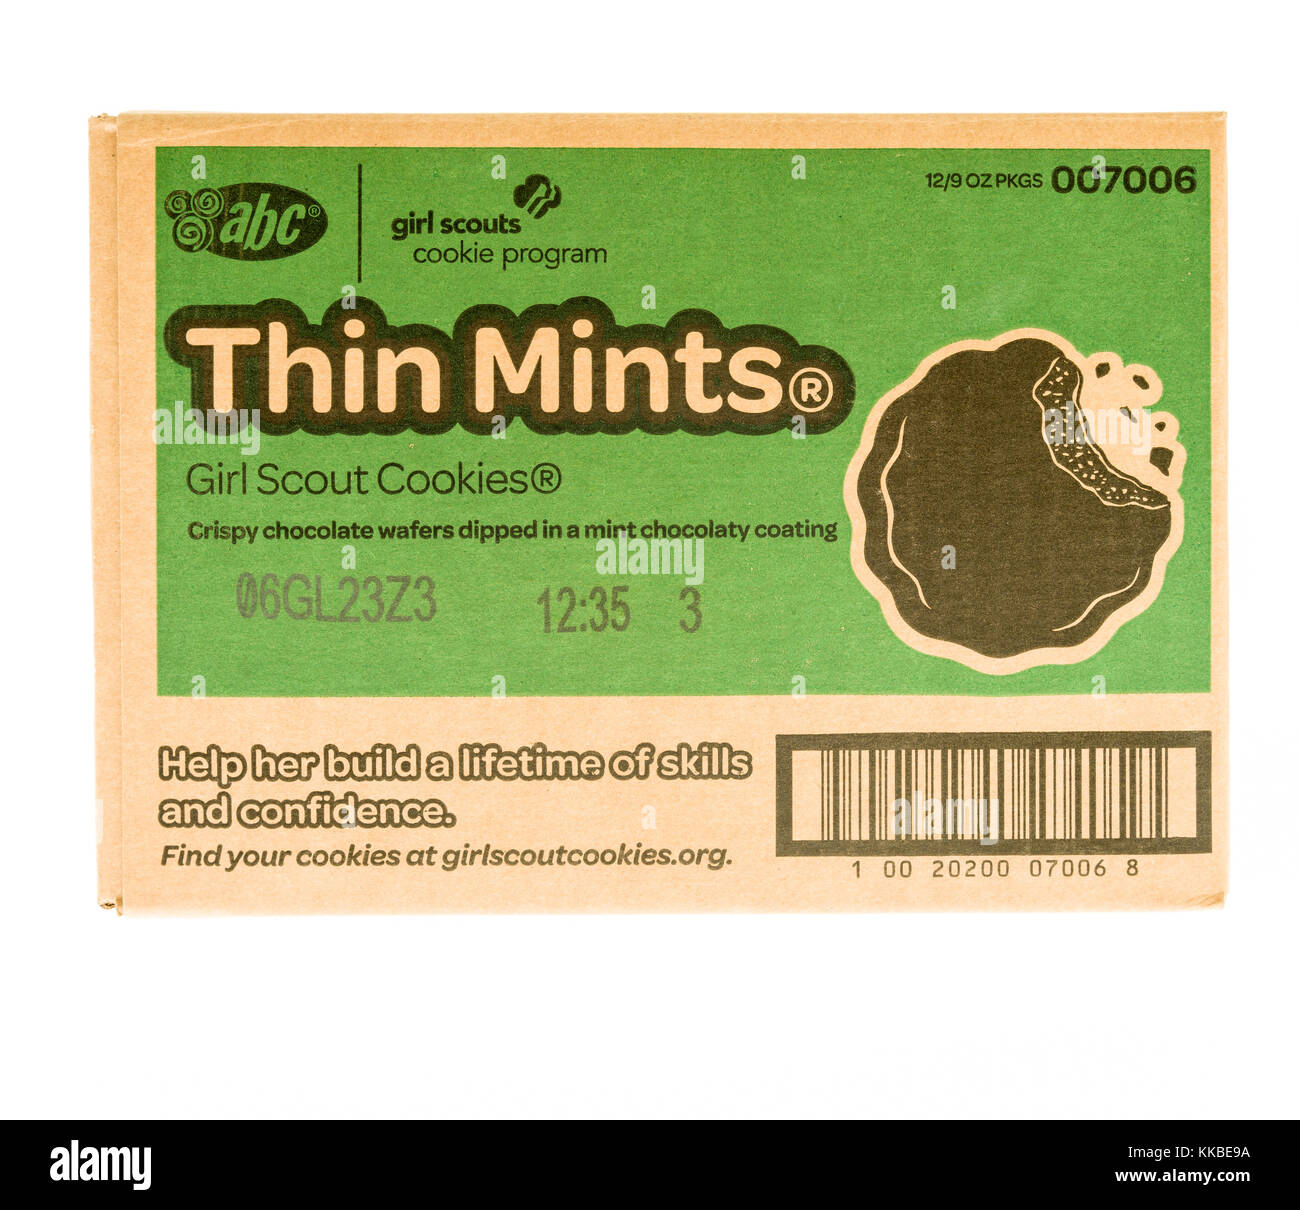 Winneconne, WI - 20 November 2017:  A case of Thin Mints girl scout cookies on an on an isolated background. - Stock Image